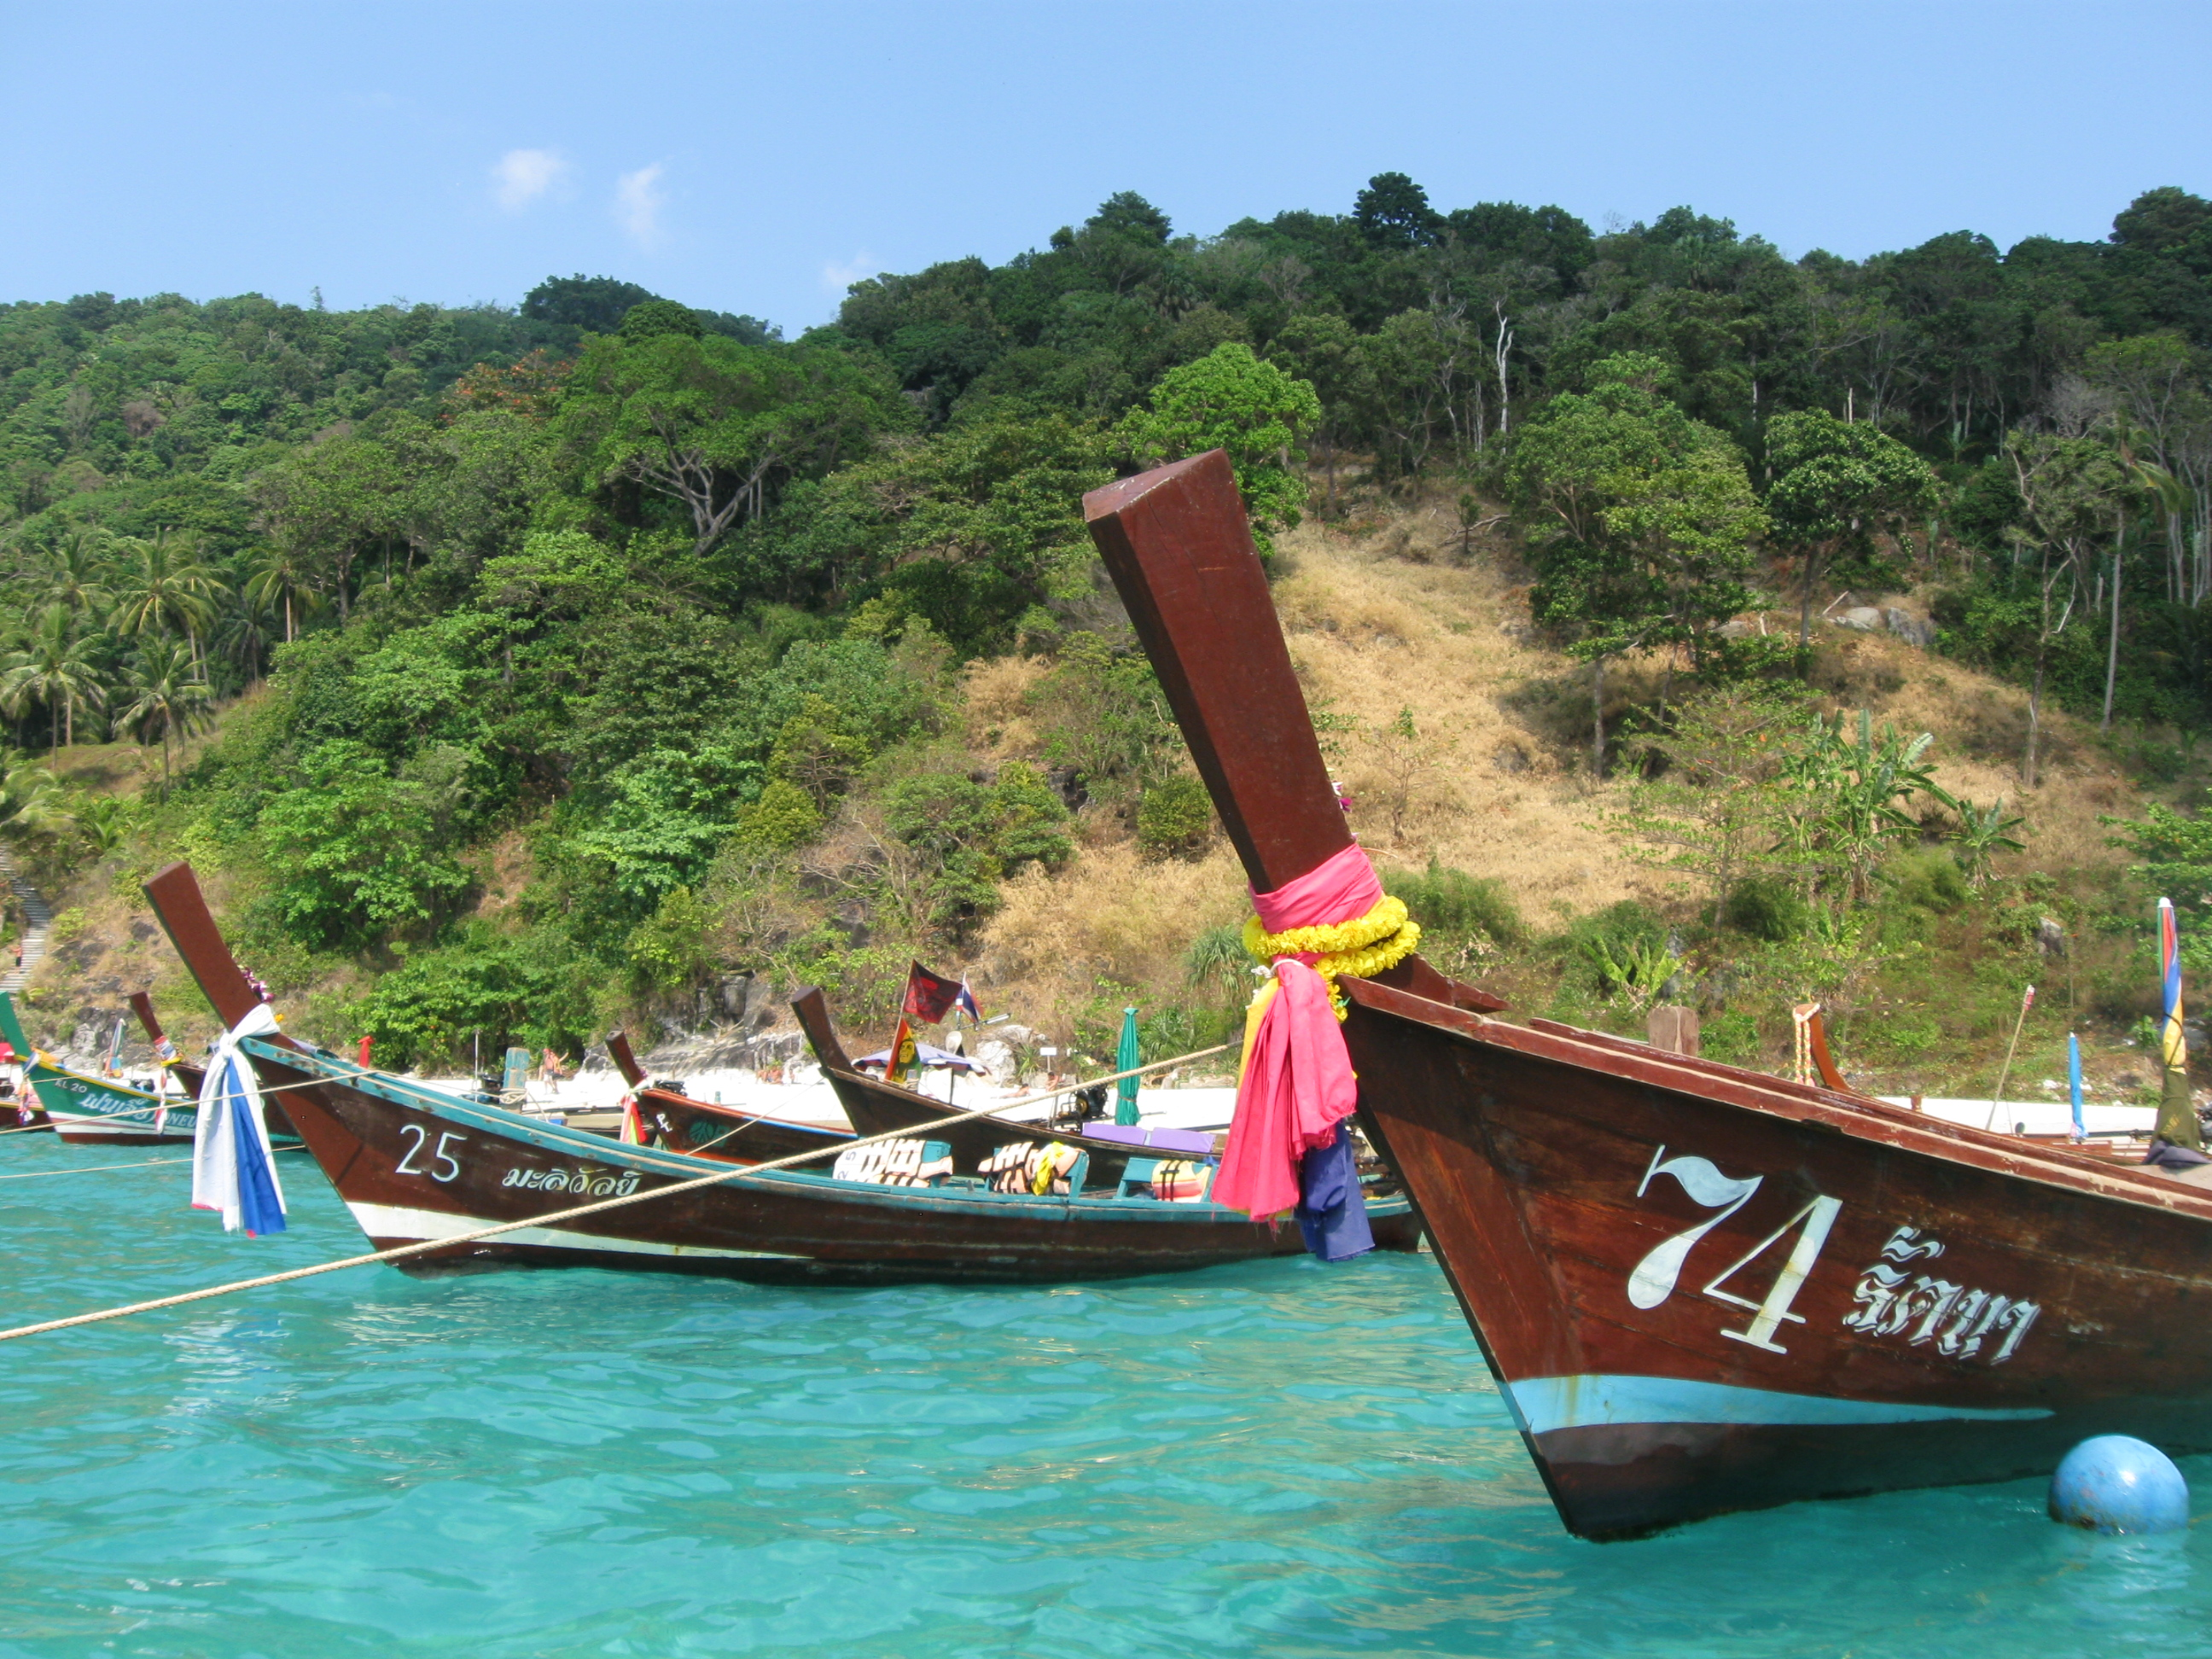 Island_Phuket_Thailand_South_East_Asia